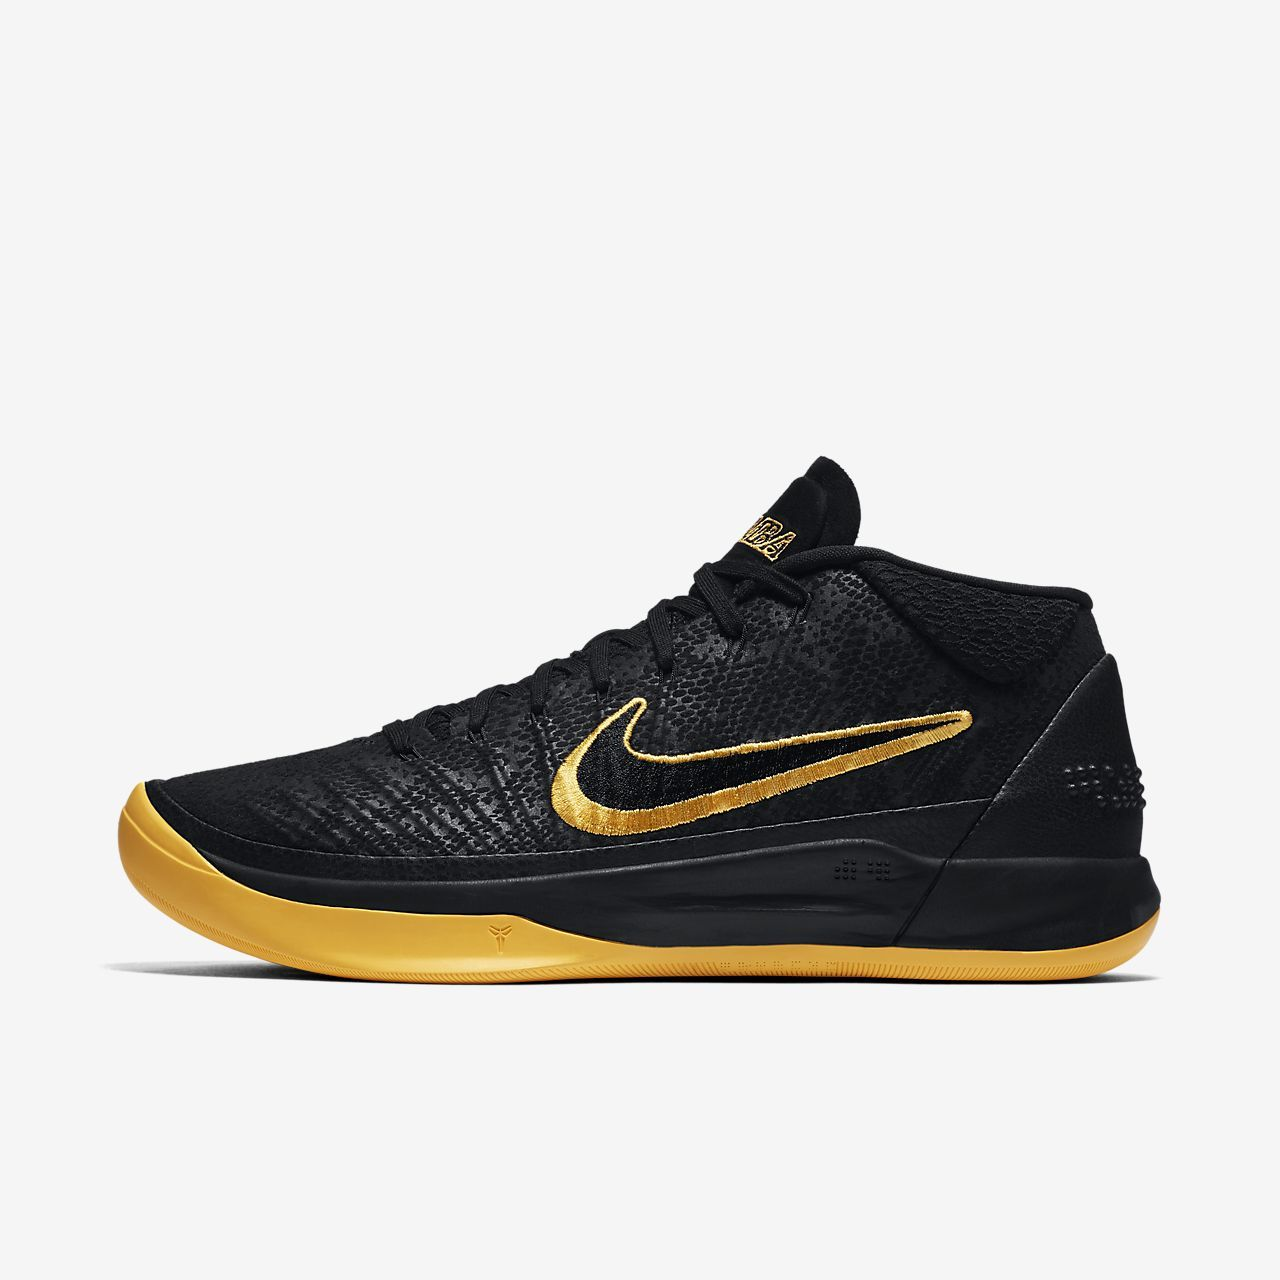 de81ba5b736c Nike Kobe A.D. Black Mamba Men s Basketball Shoe